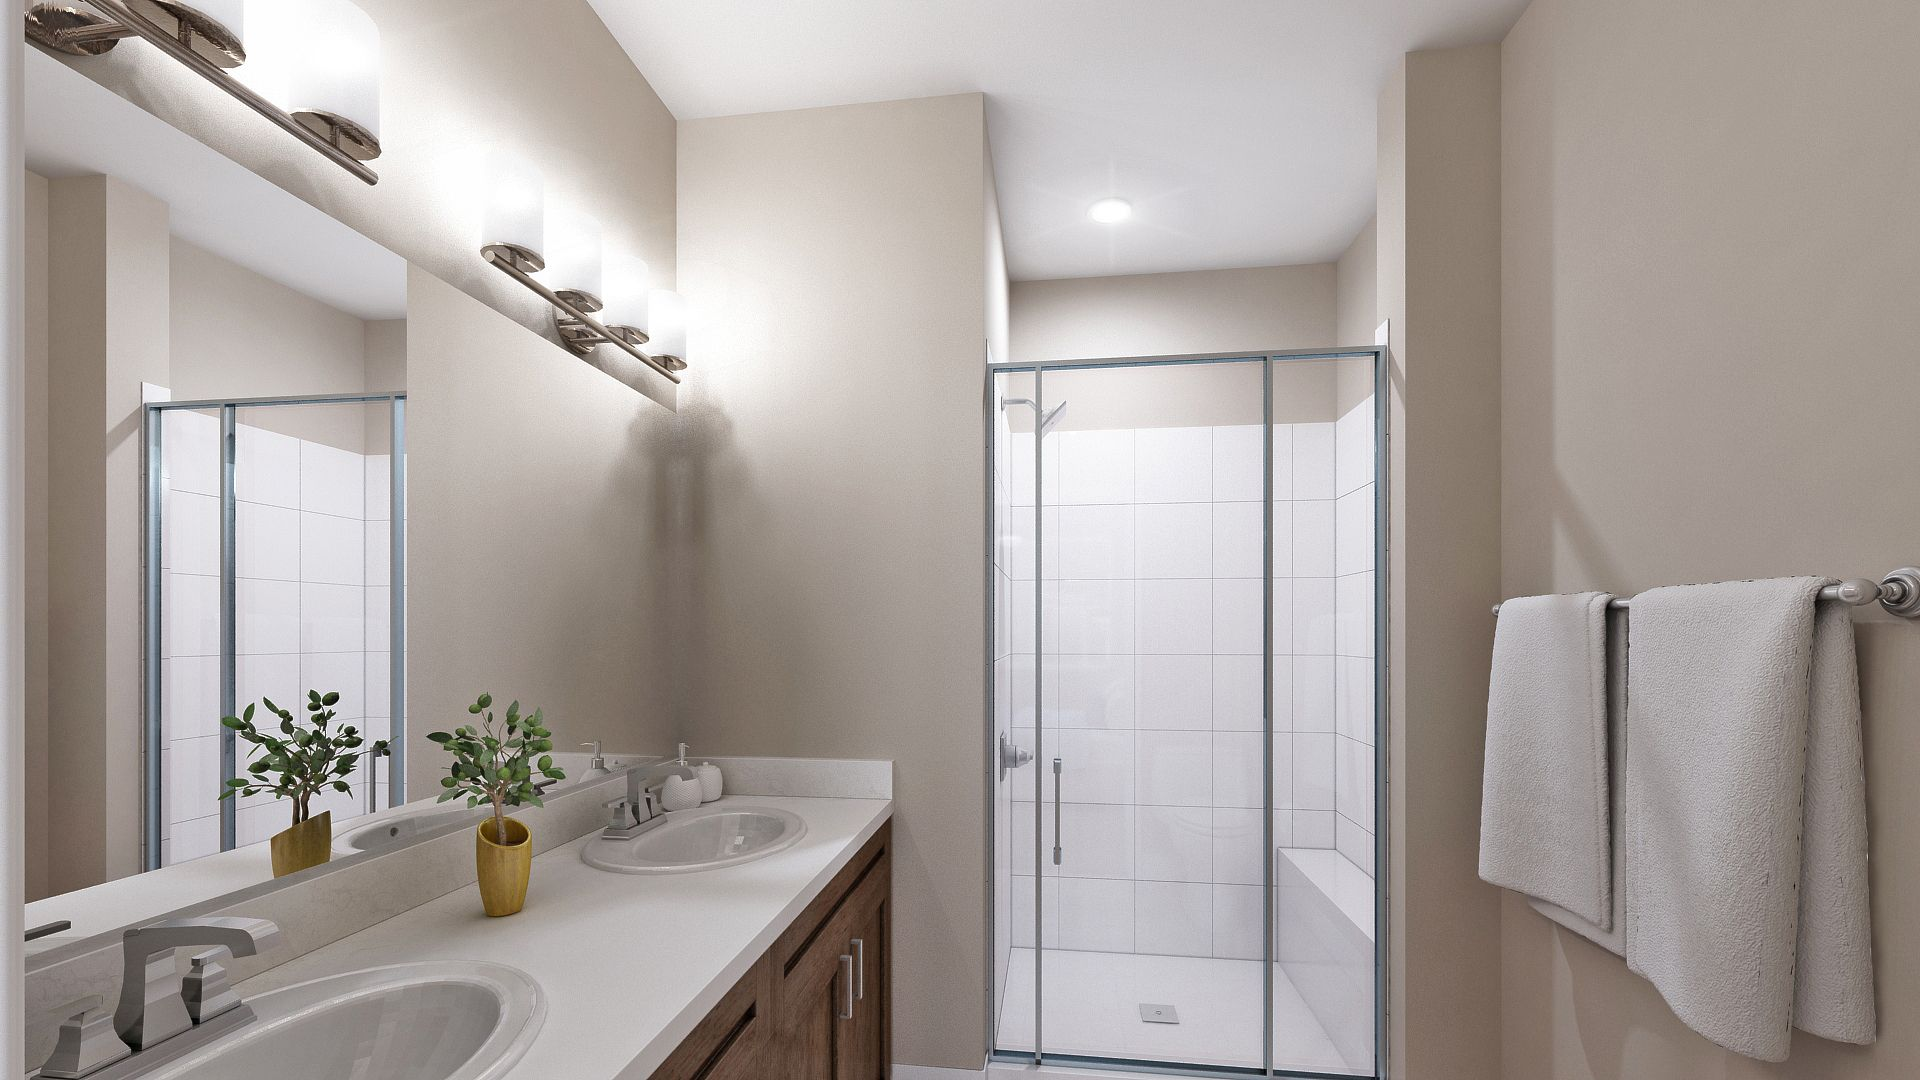 Bathroom featured in the A Plan By Koelbel Urban Homes in Denver, CO